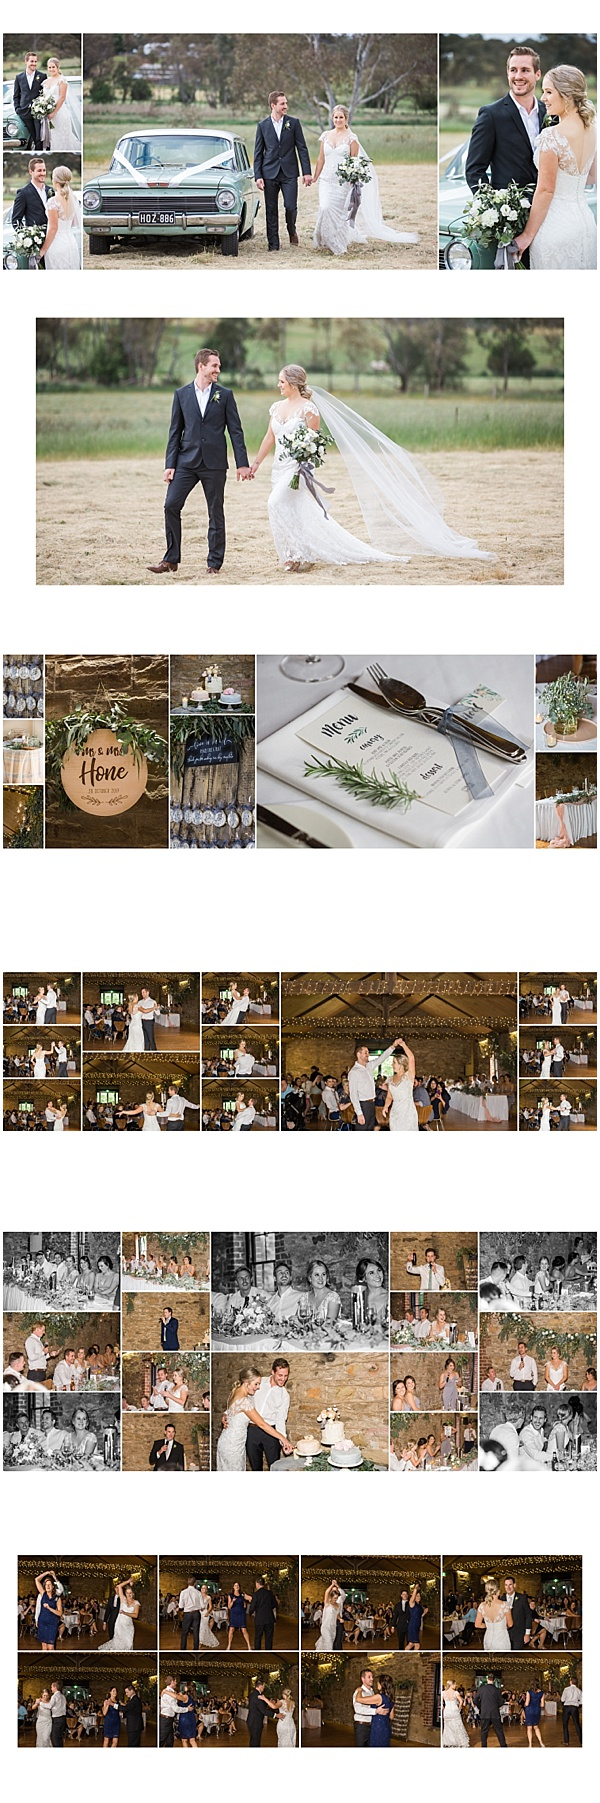 WEDDING ALBUM DESIGN3